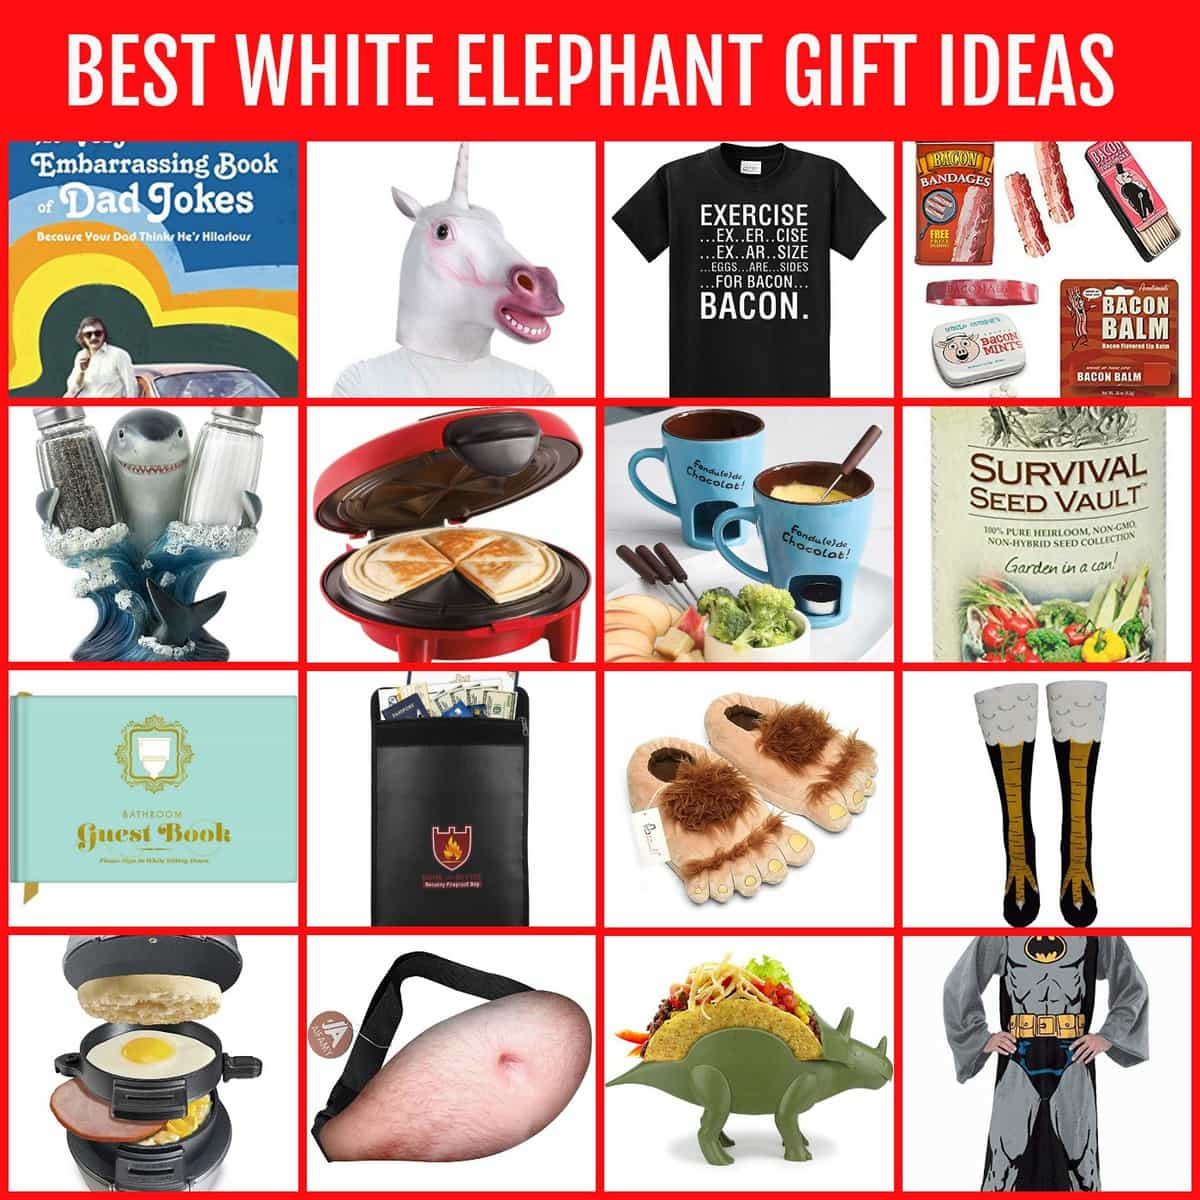 The BEST White Elephant Gifts - Funny, Useful & DIY Ideas! | Lil\' Luna